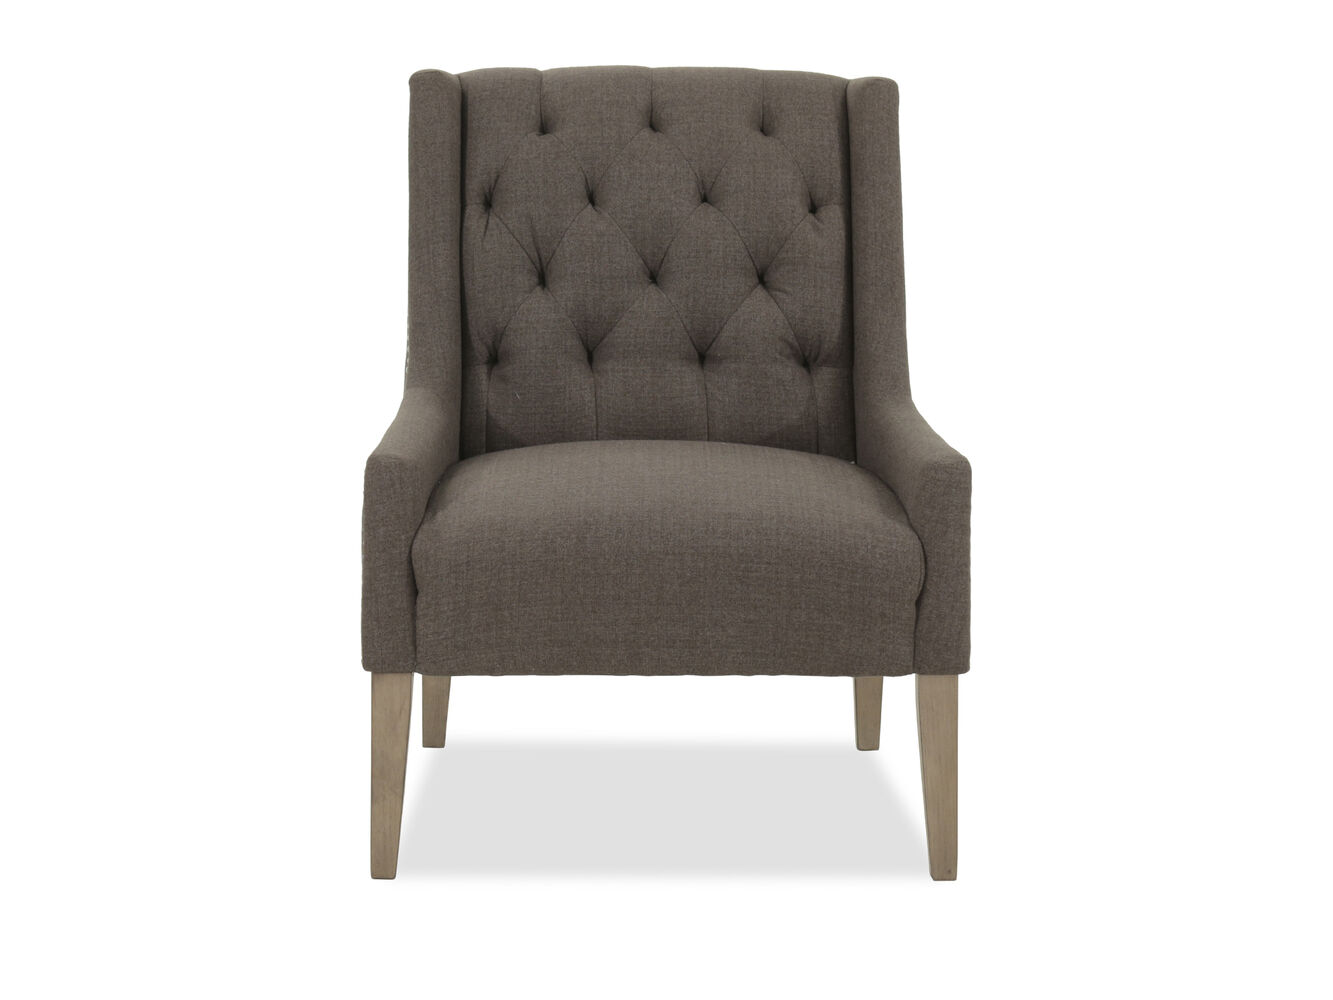 Tufted casual accent chair in gray mathis brothers furniture Tufted accent chair